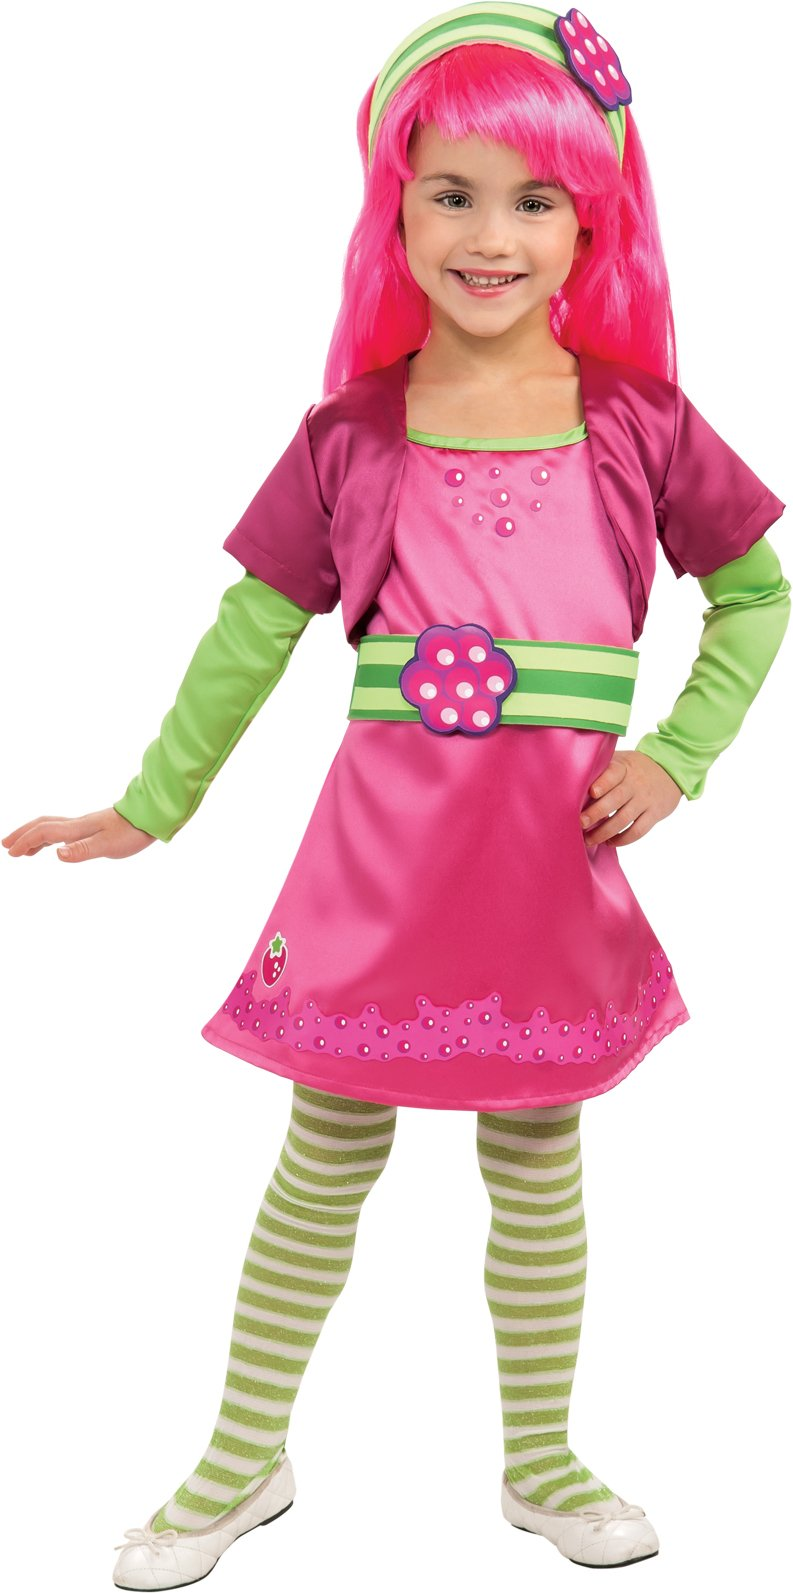 Strawberry Shortcake - Raspberry Torte Deluxe Toddler / Child Co